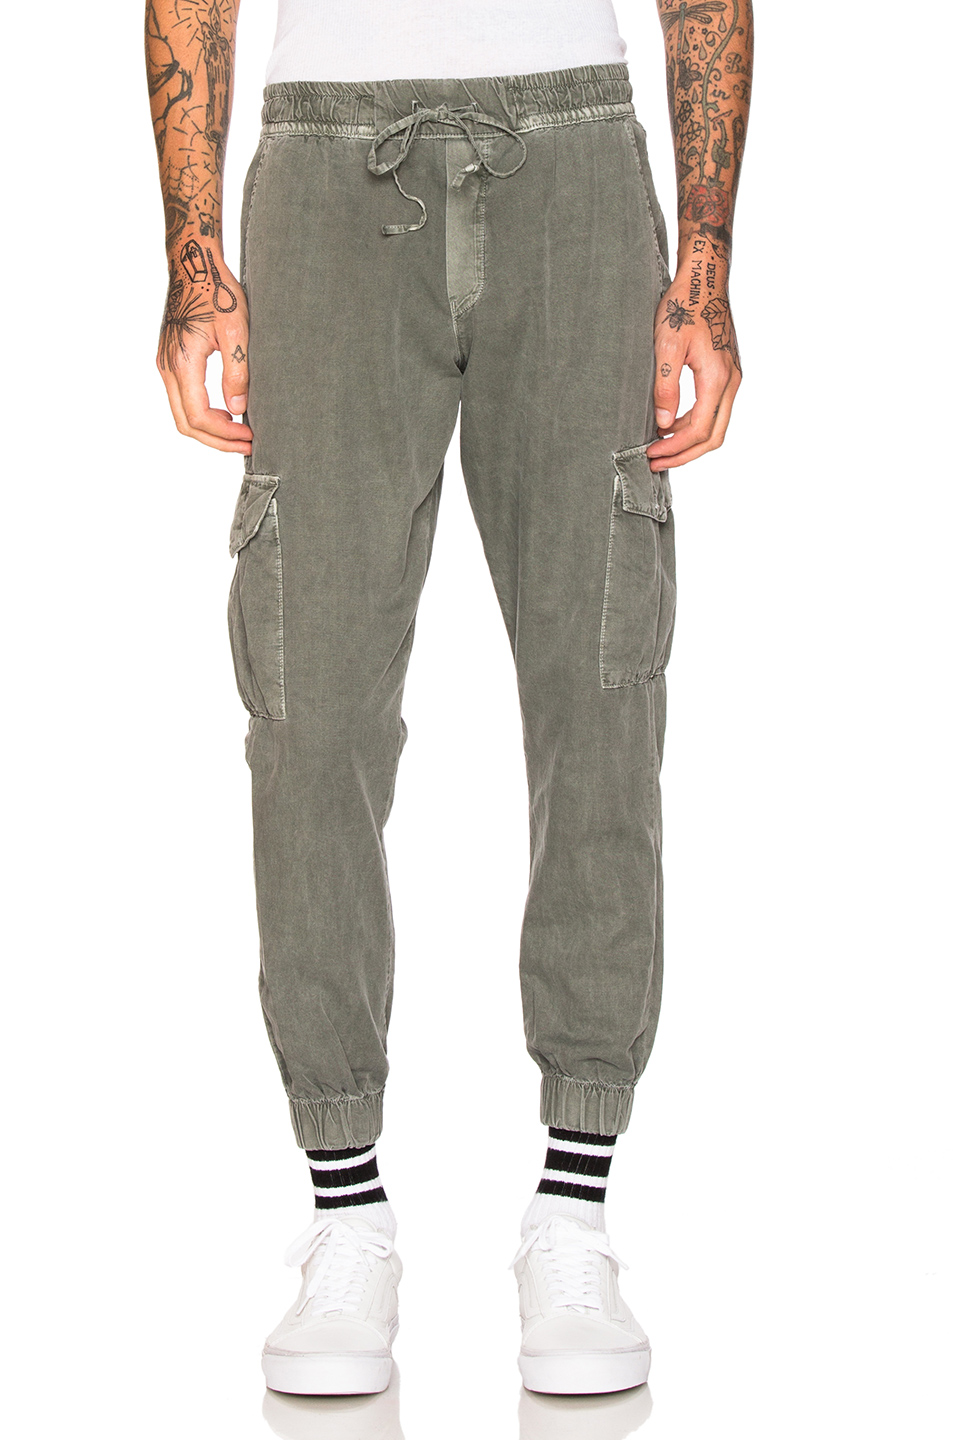 NSF Johnny Pants in Green